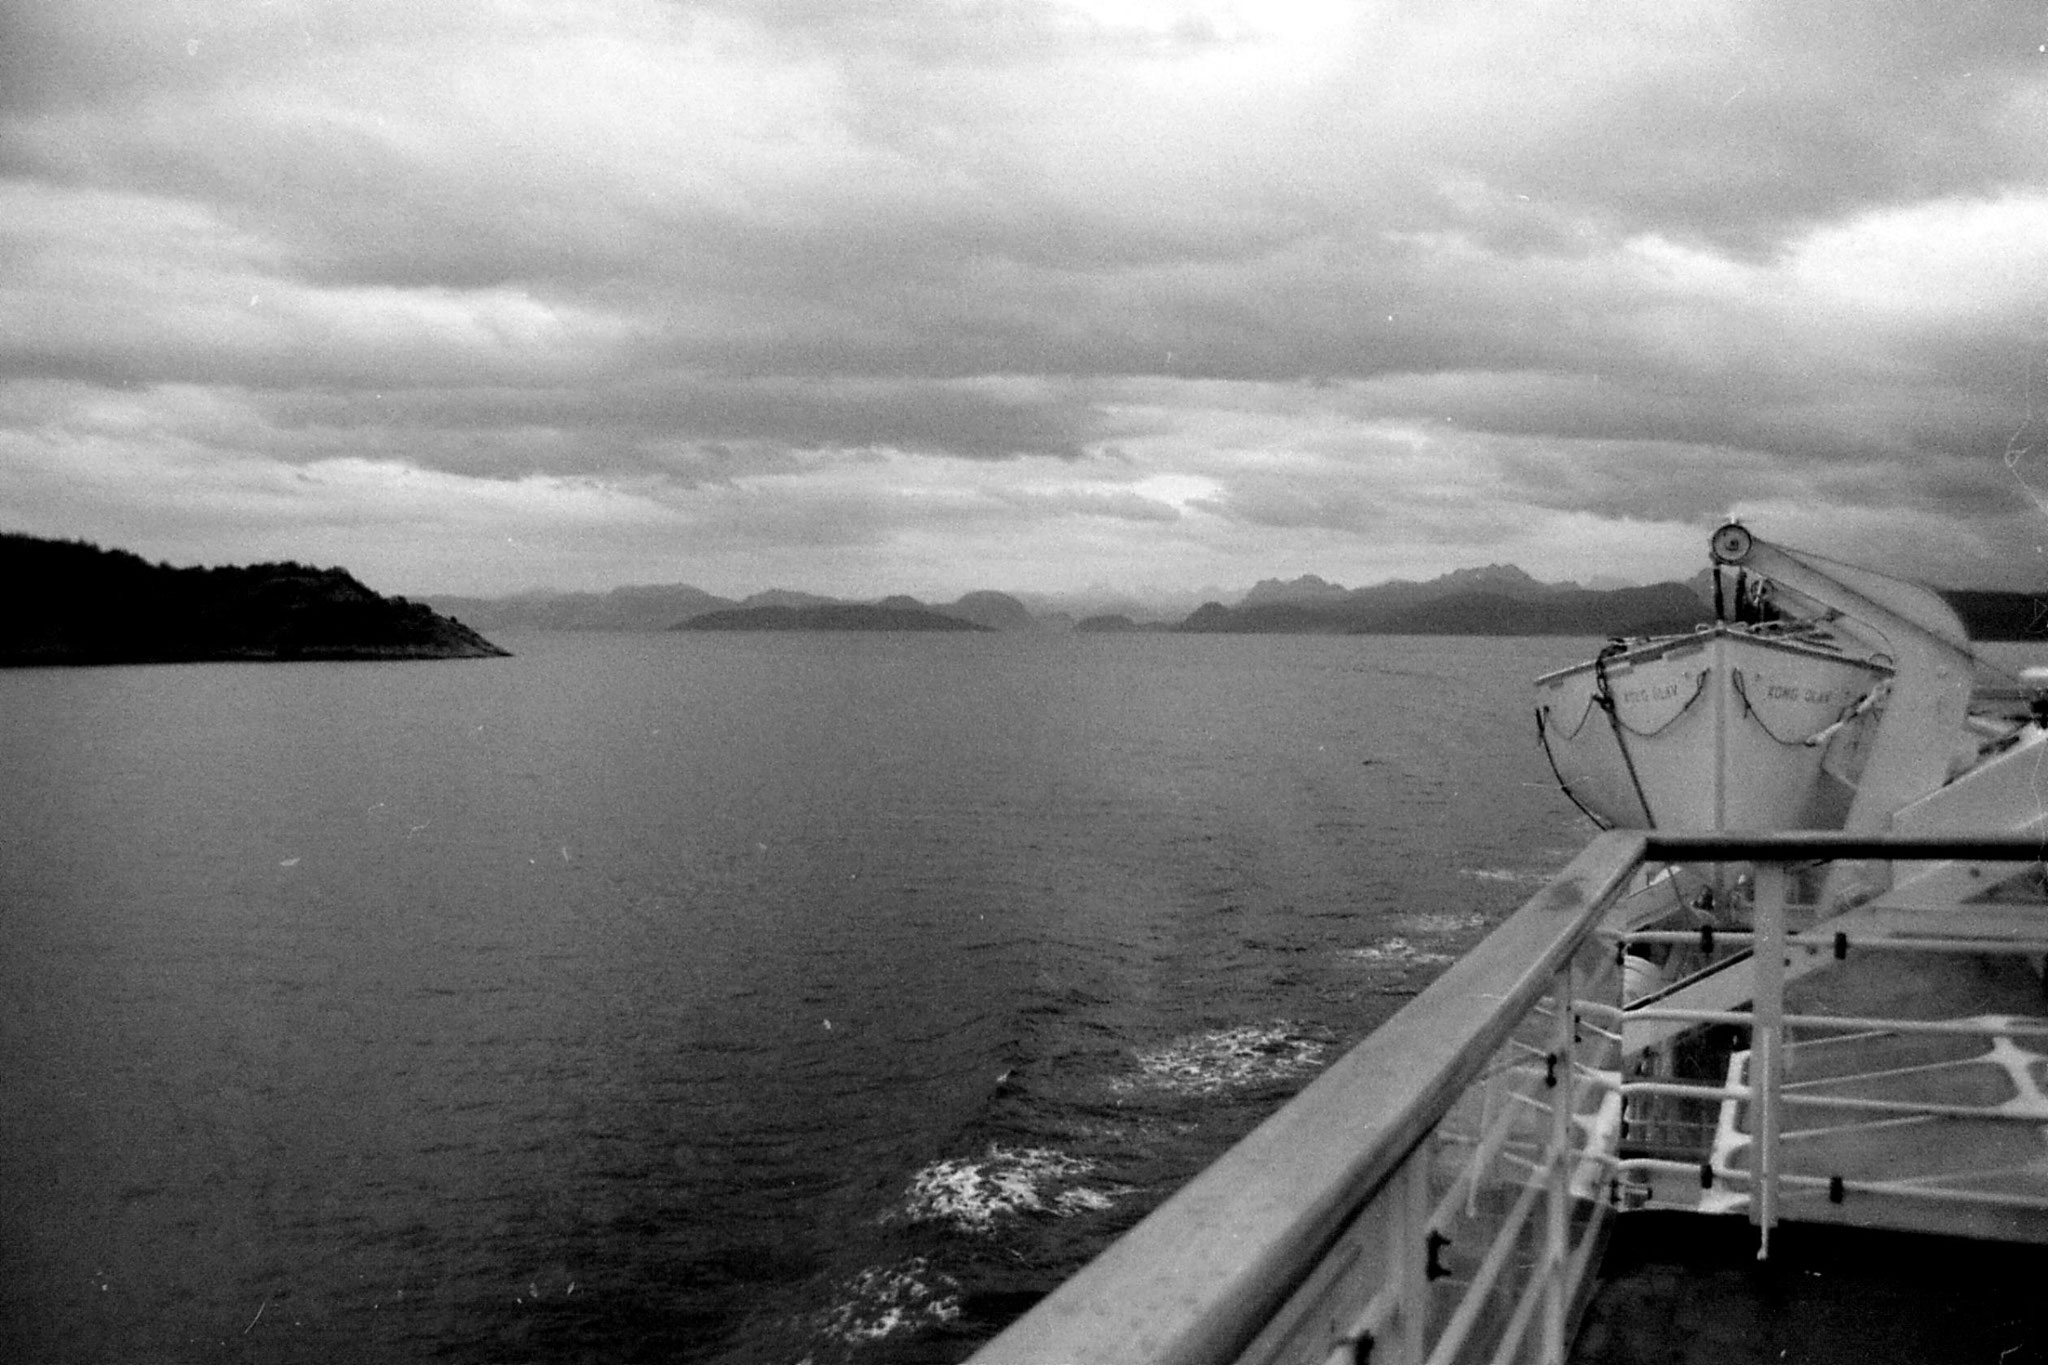 22/9/1988: 4: leaving Molde, Romsdal mountains